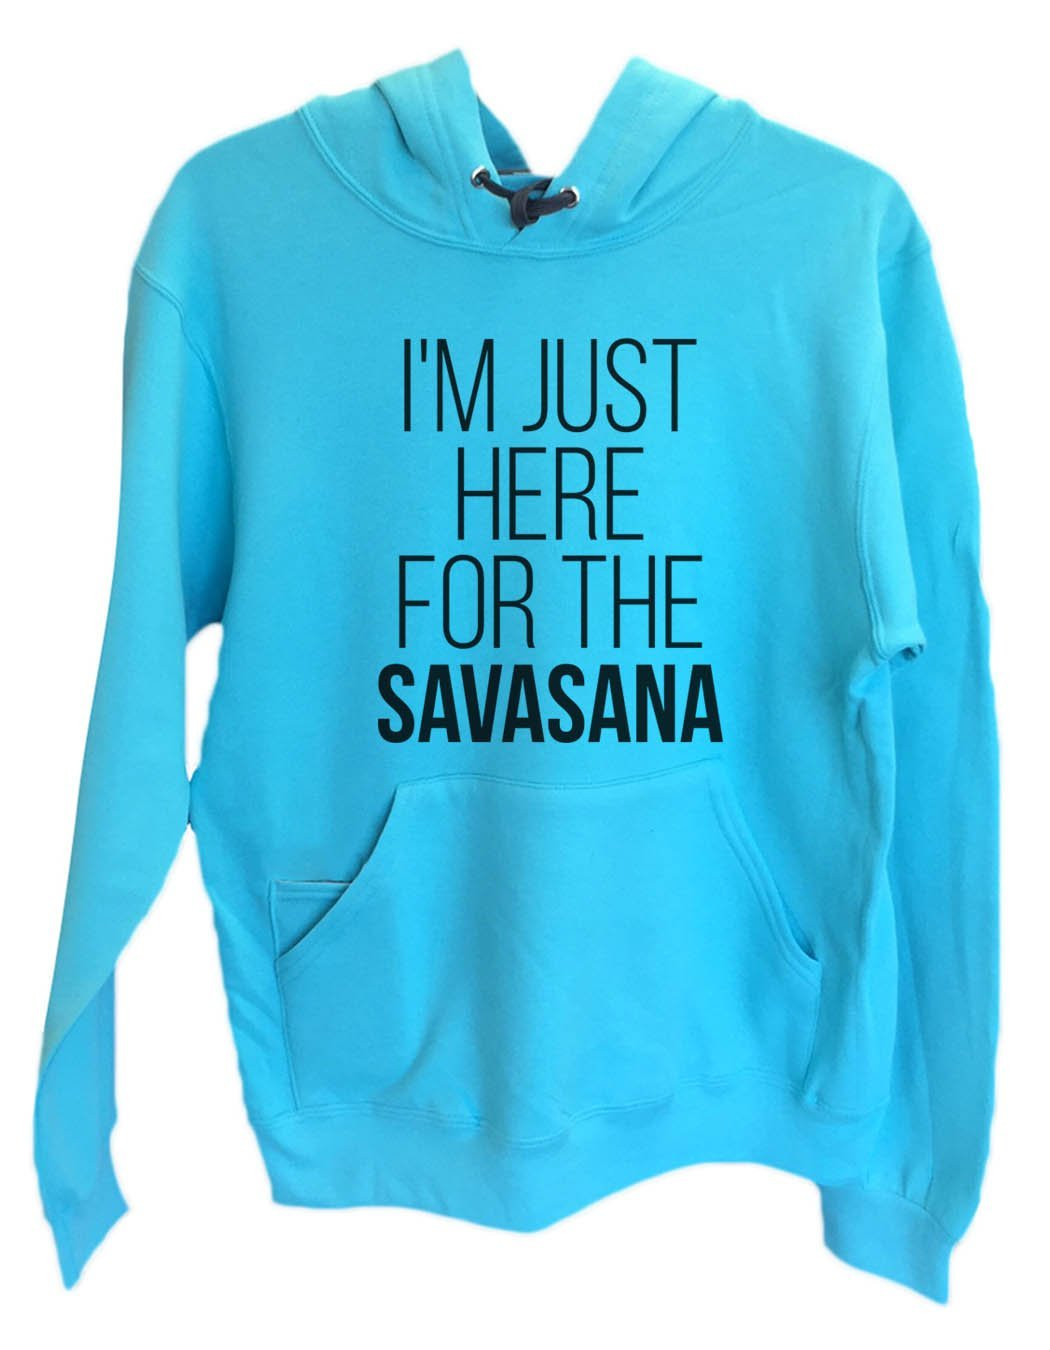 UNISEX HOODIE - I'm just here for the Savasana - FUNNY MENS AND WOMENS HOODED SWEATSHIRTS - 2119 Funny Shirt Small / Turquoise